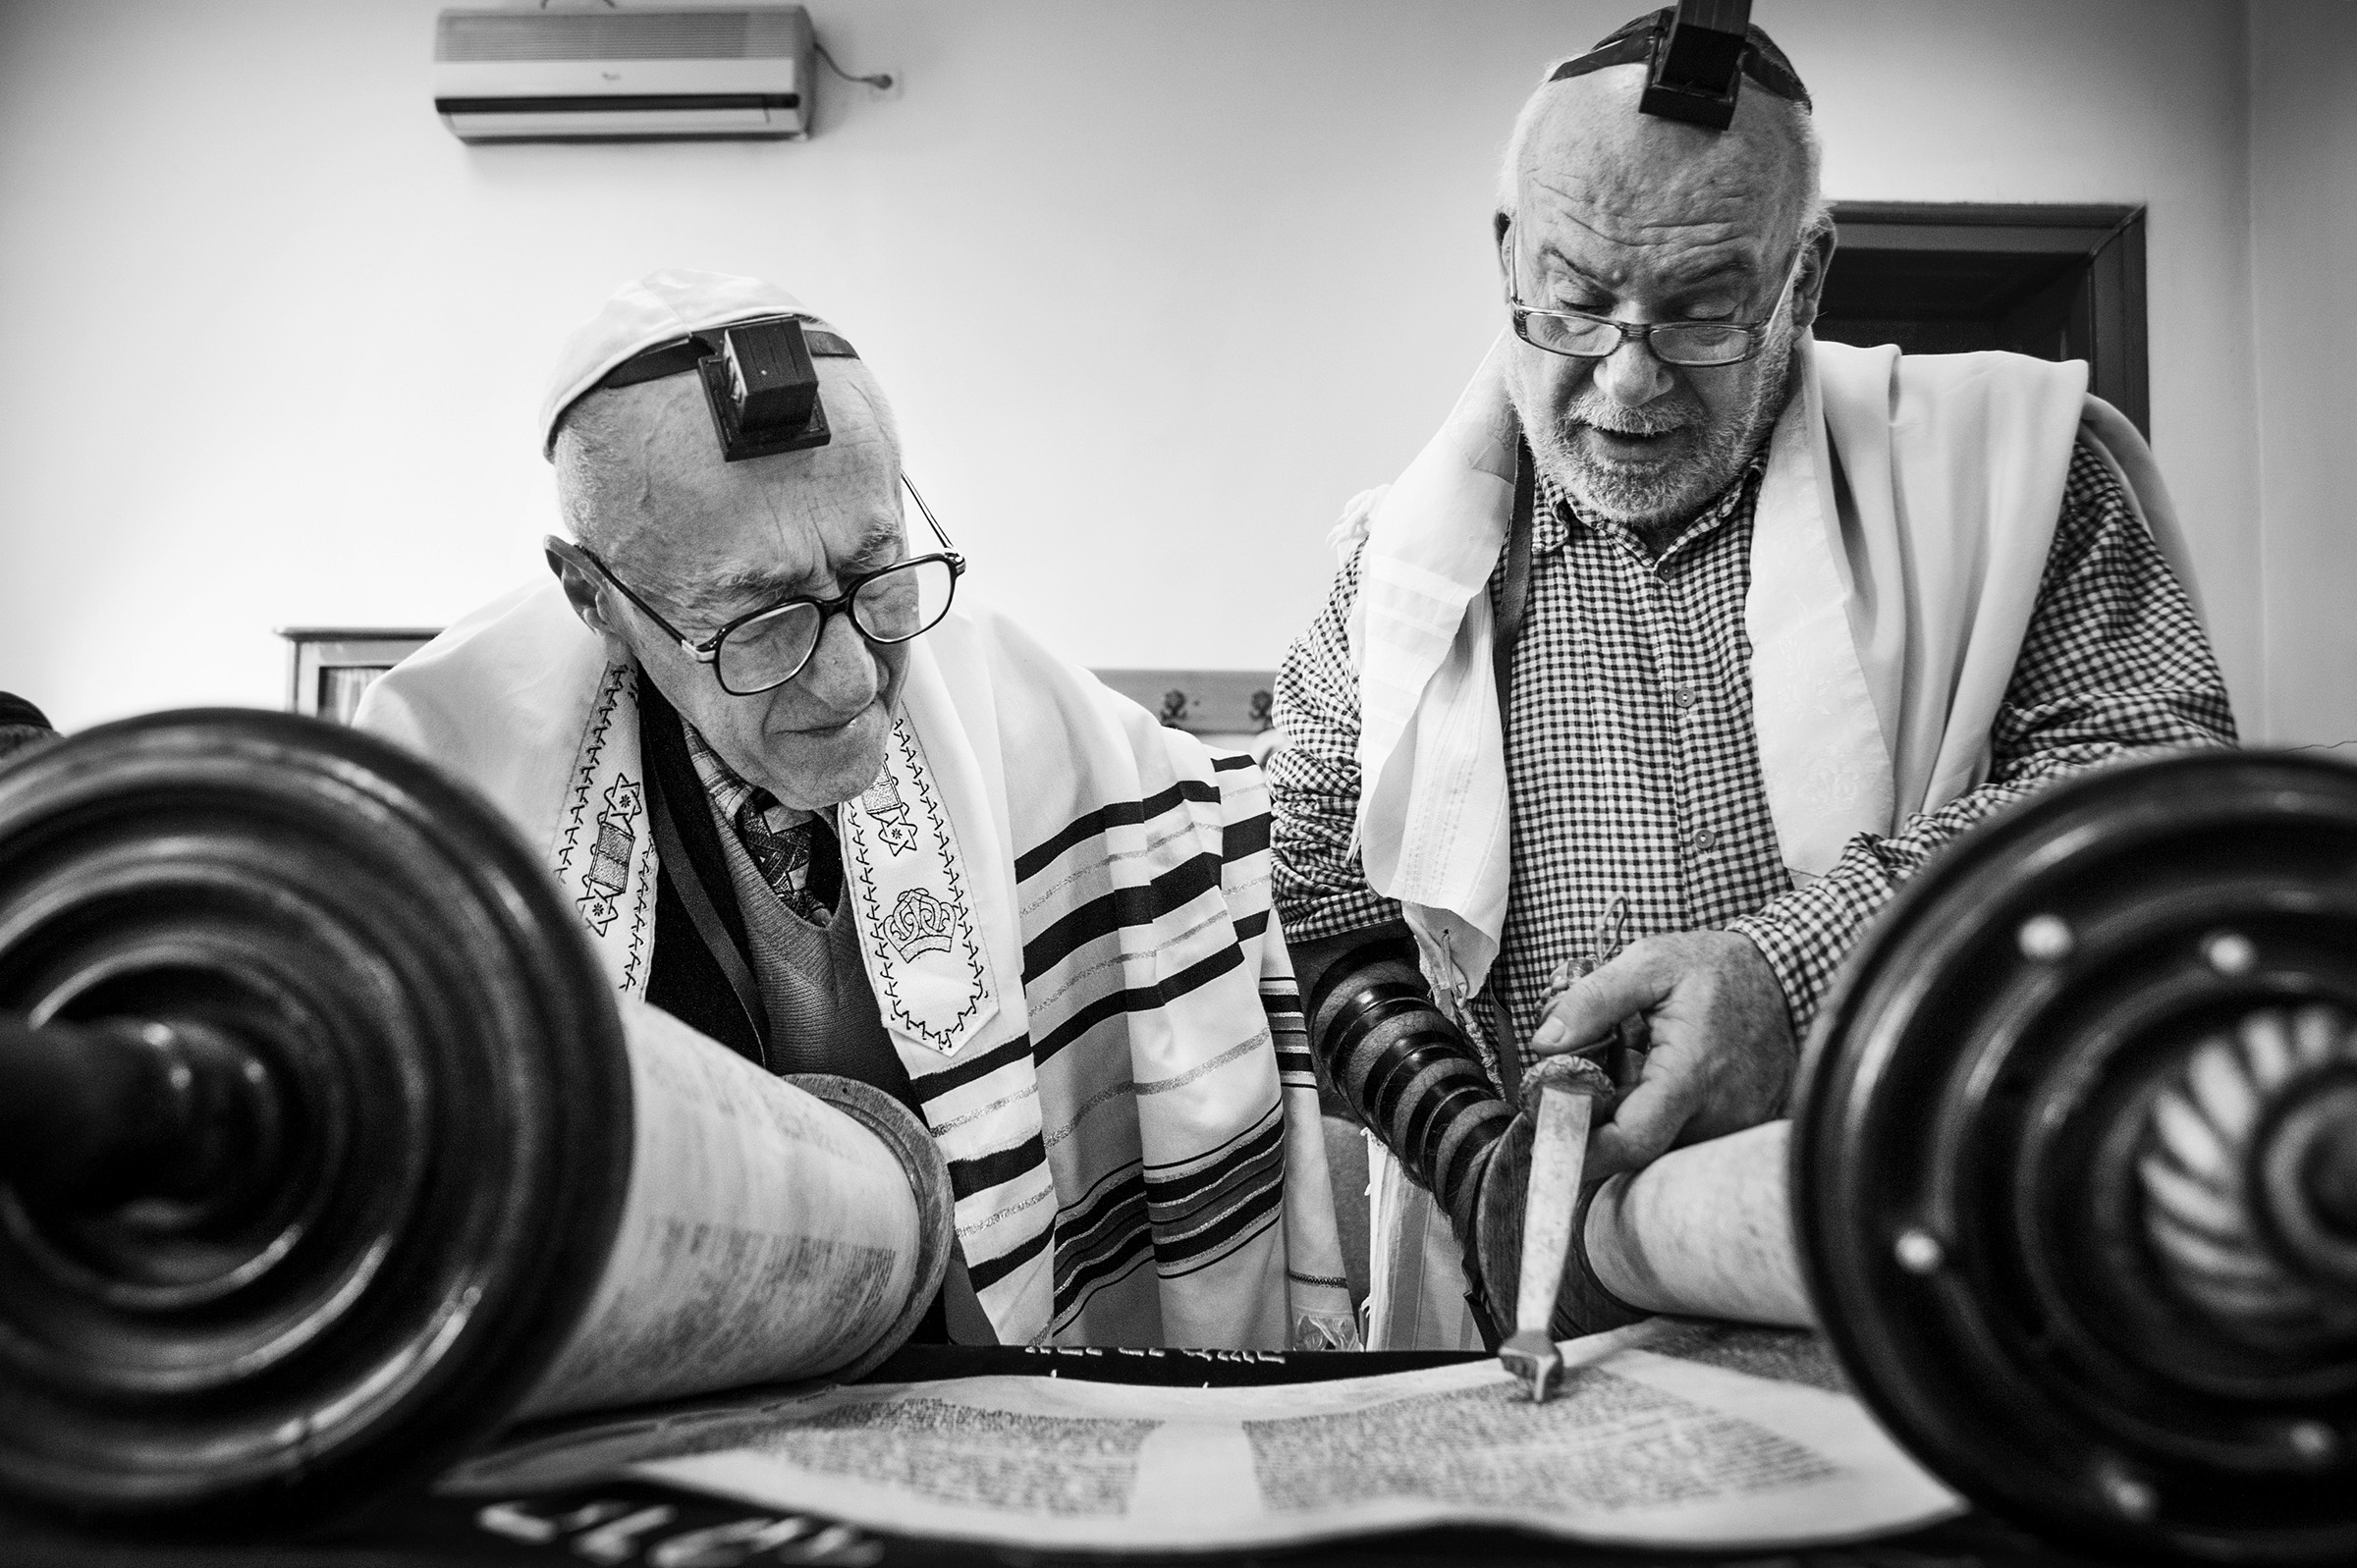 Community member, Zakaria Salman, left, and Cantor Shraya Kav, right, read from the Torah scroll during the daily morning meeting at the Sas Chavra Synagogue on April 11, 2013. Though not officially a rabbi, Kav, a cantor from Tel Aviv, performs many of daily duties of a rabbi for the small community. (Photo by Daniel Owen/GroundTruth)